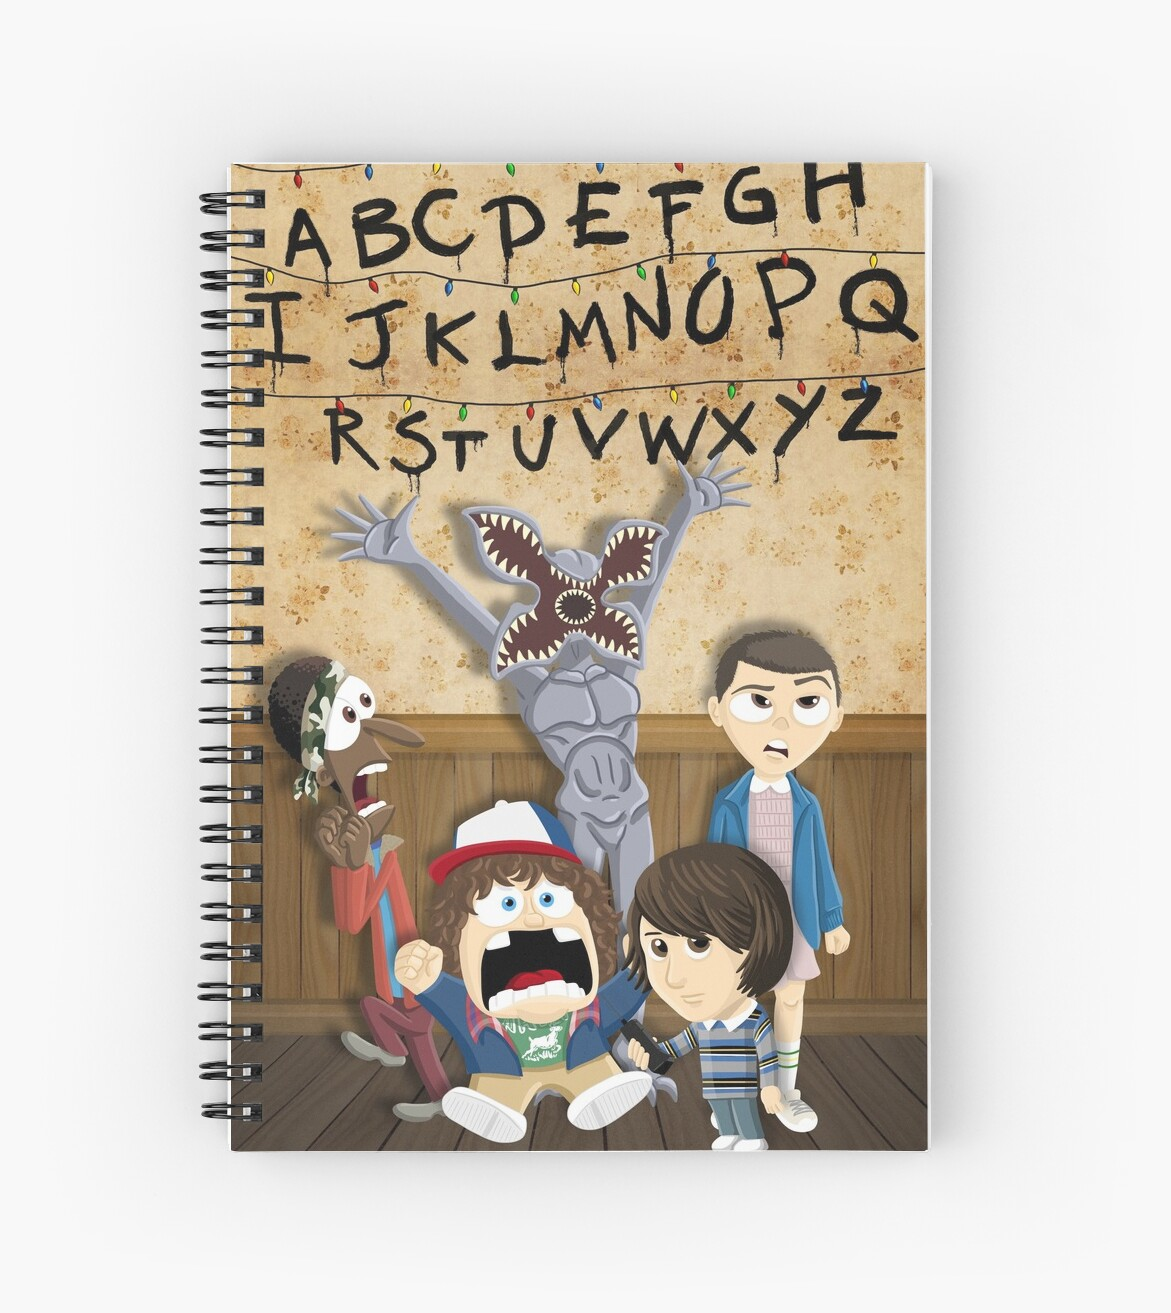 Stranger Things Cartoon Mash Up Spiral Notebooks By Bovaart Redbubble